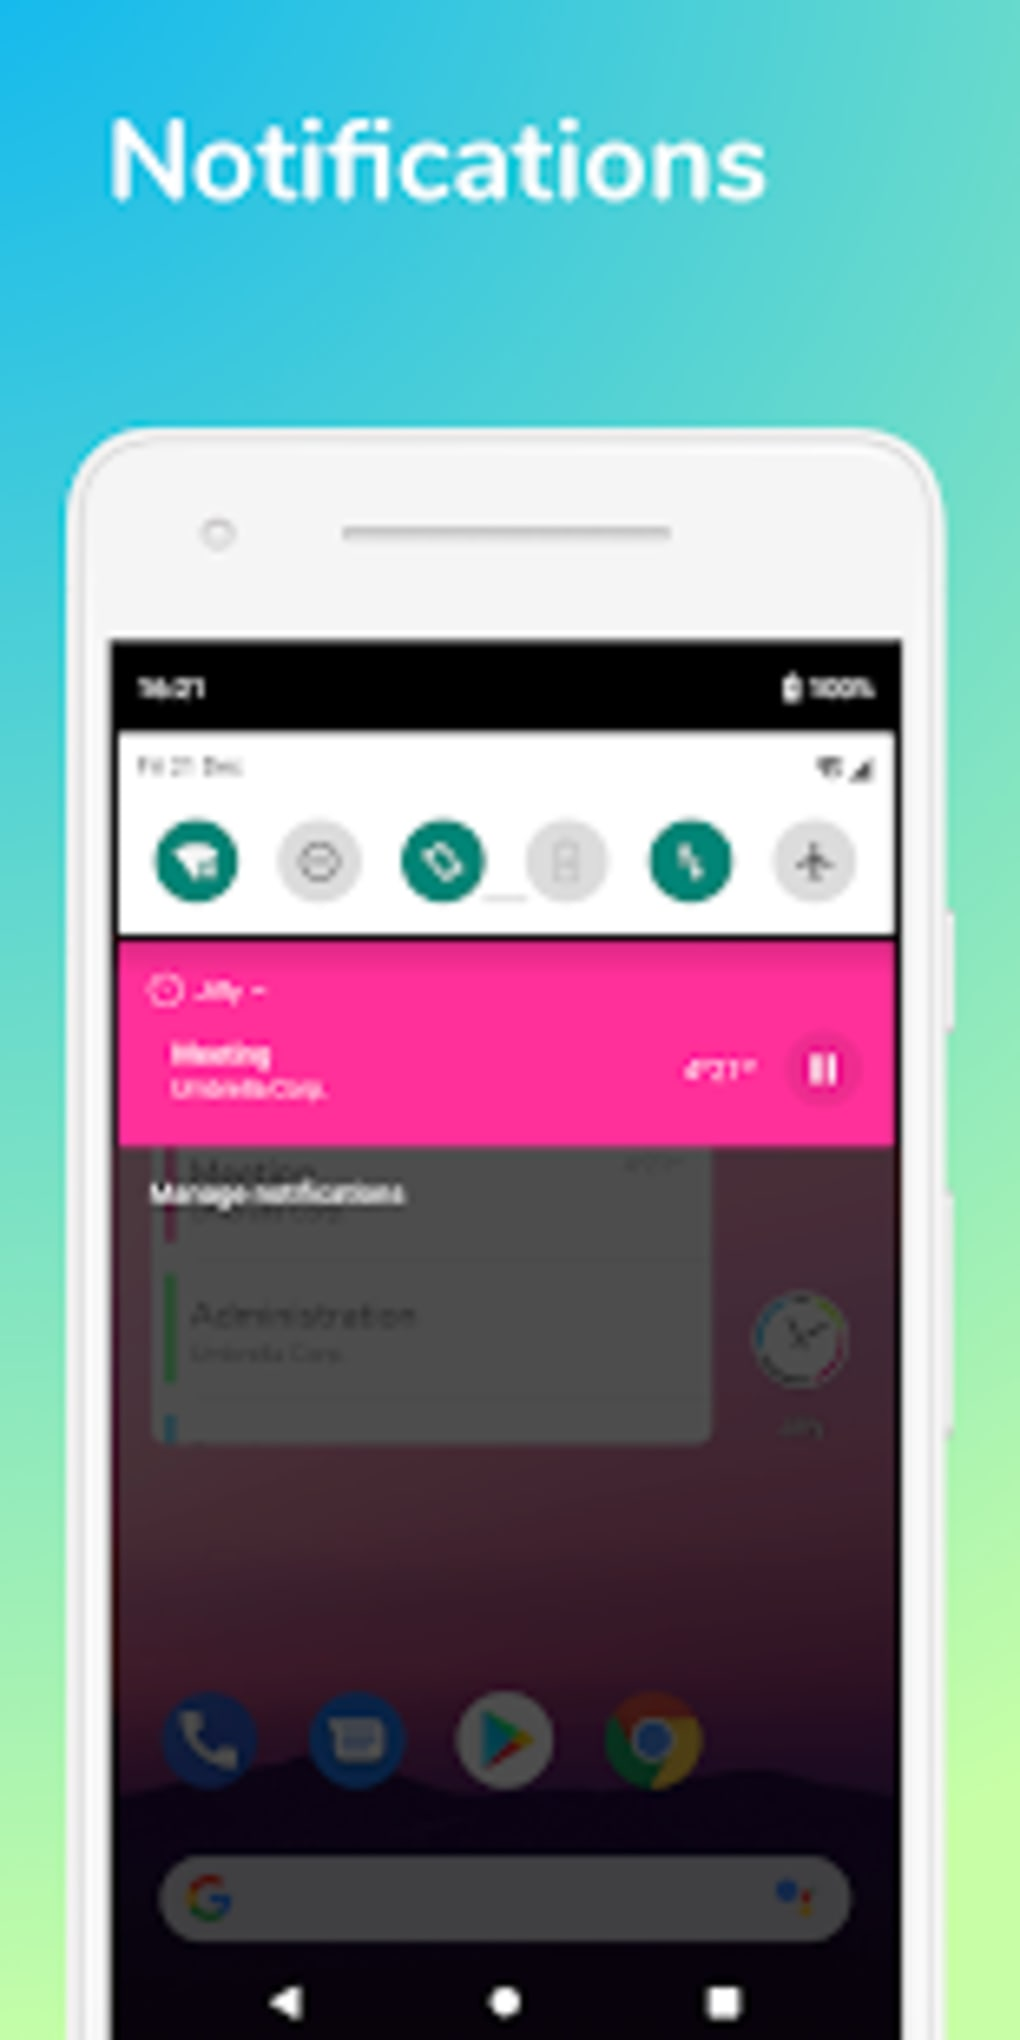 Jiffy - Time tracker for Android - Download